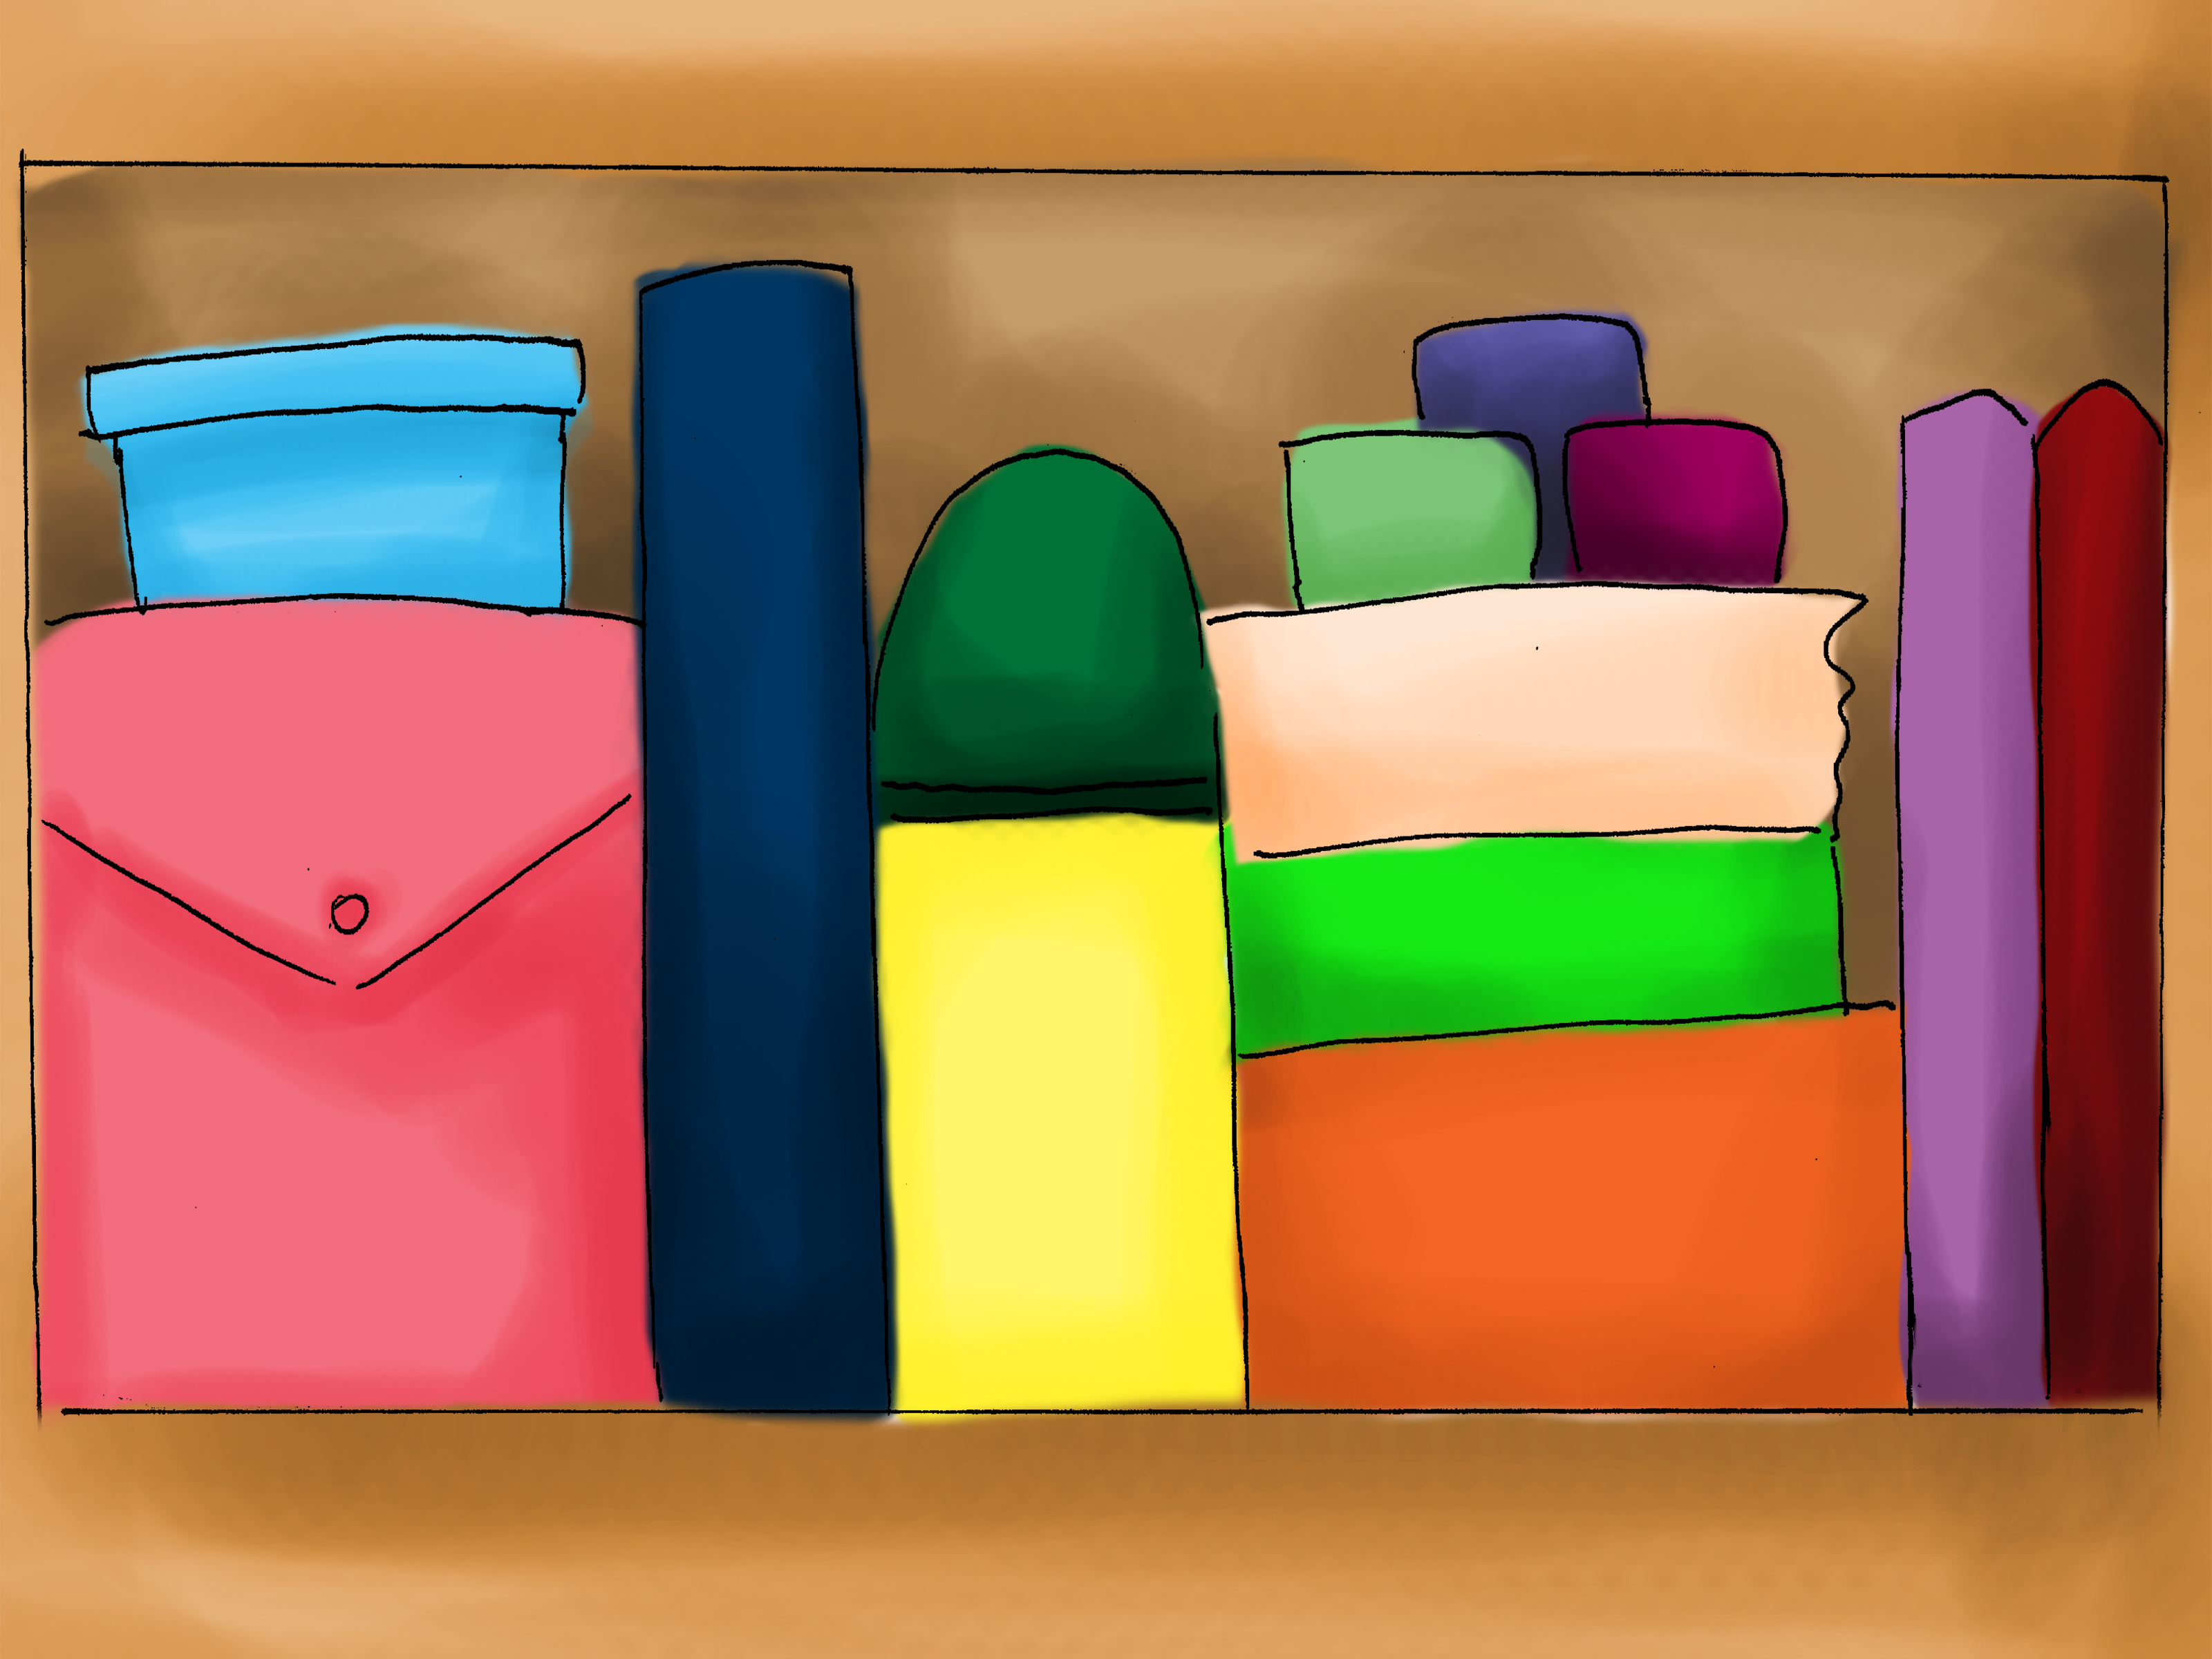 Desk clipart organised Clipart Free File Home Organization